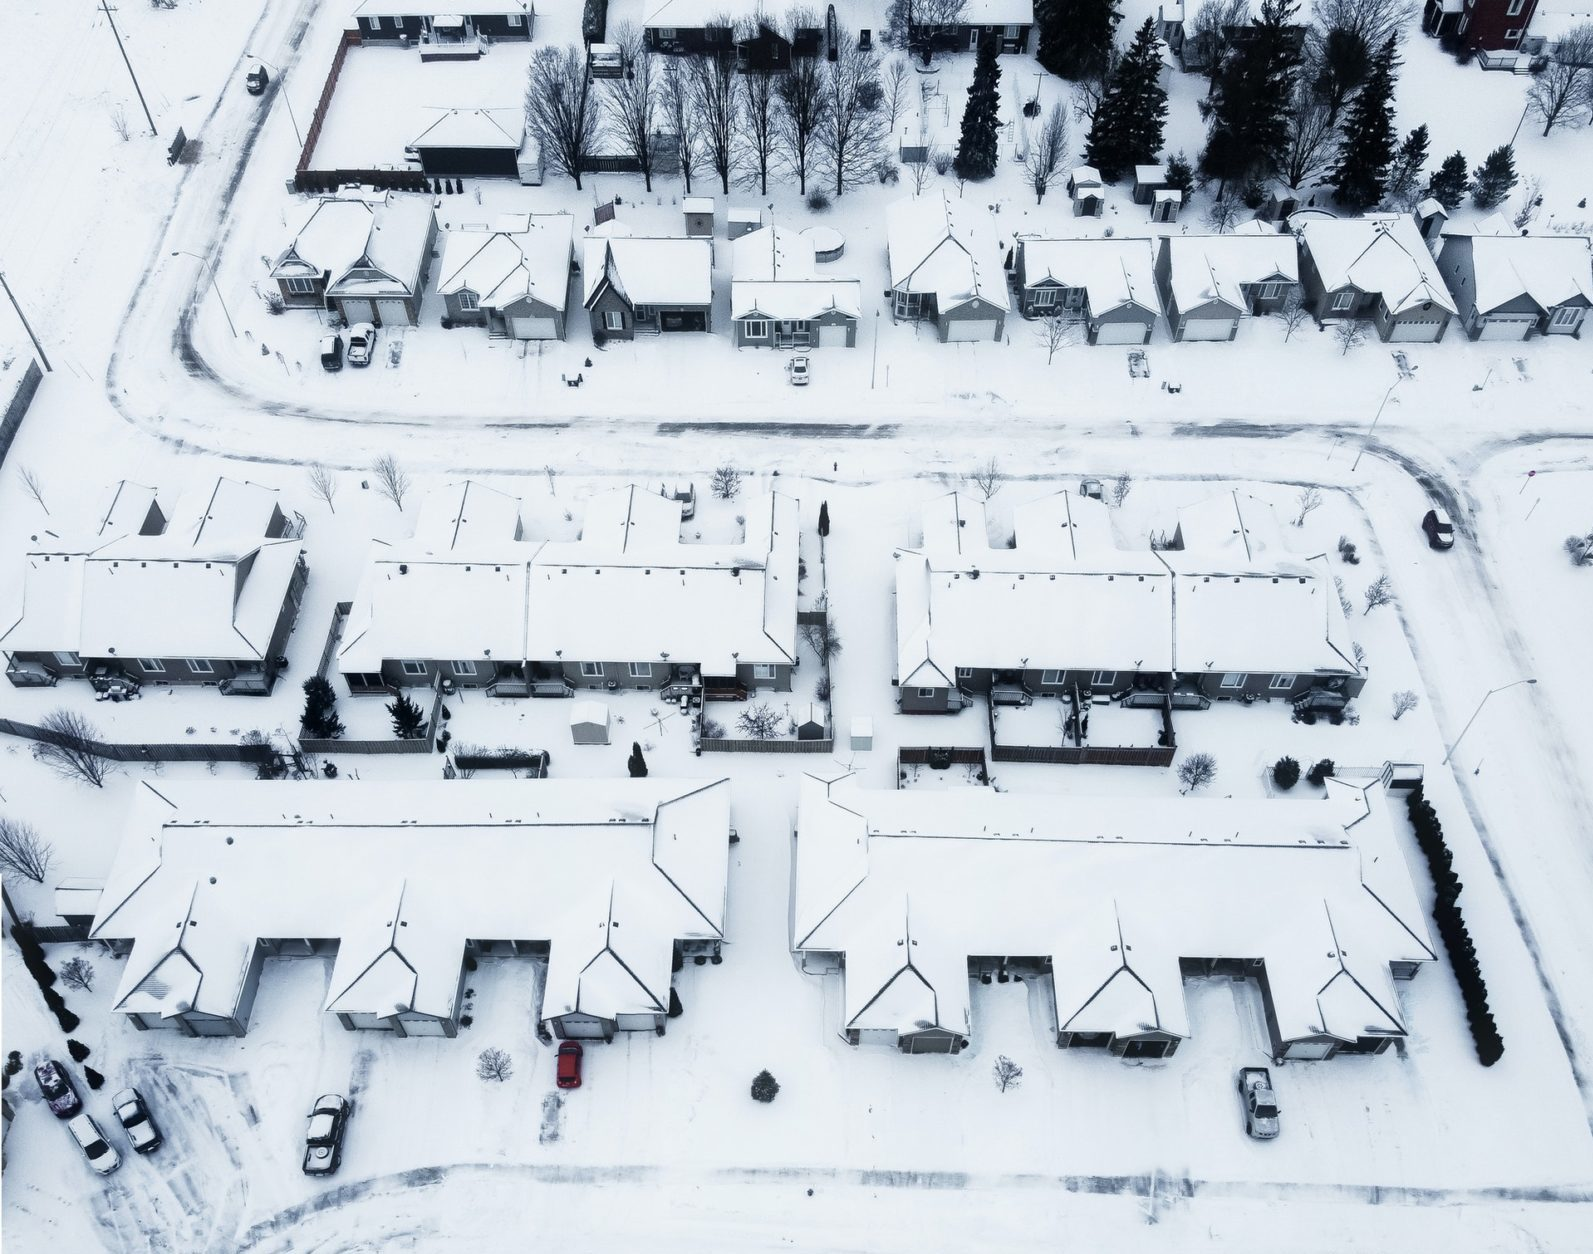 Aerial view of snow-covered houses in suburban neighborhood.